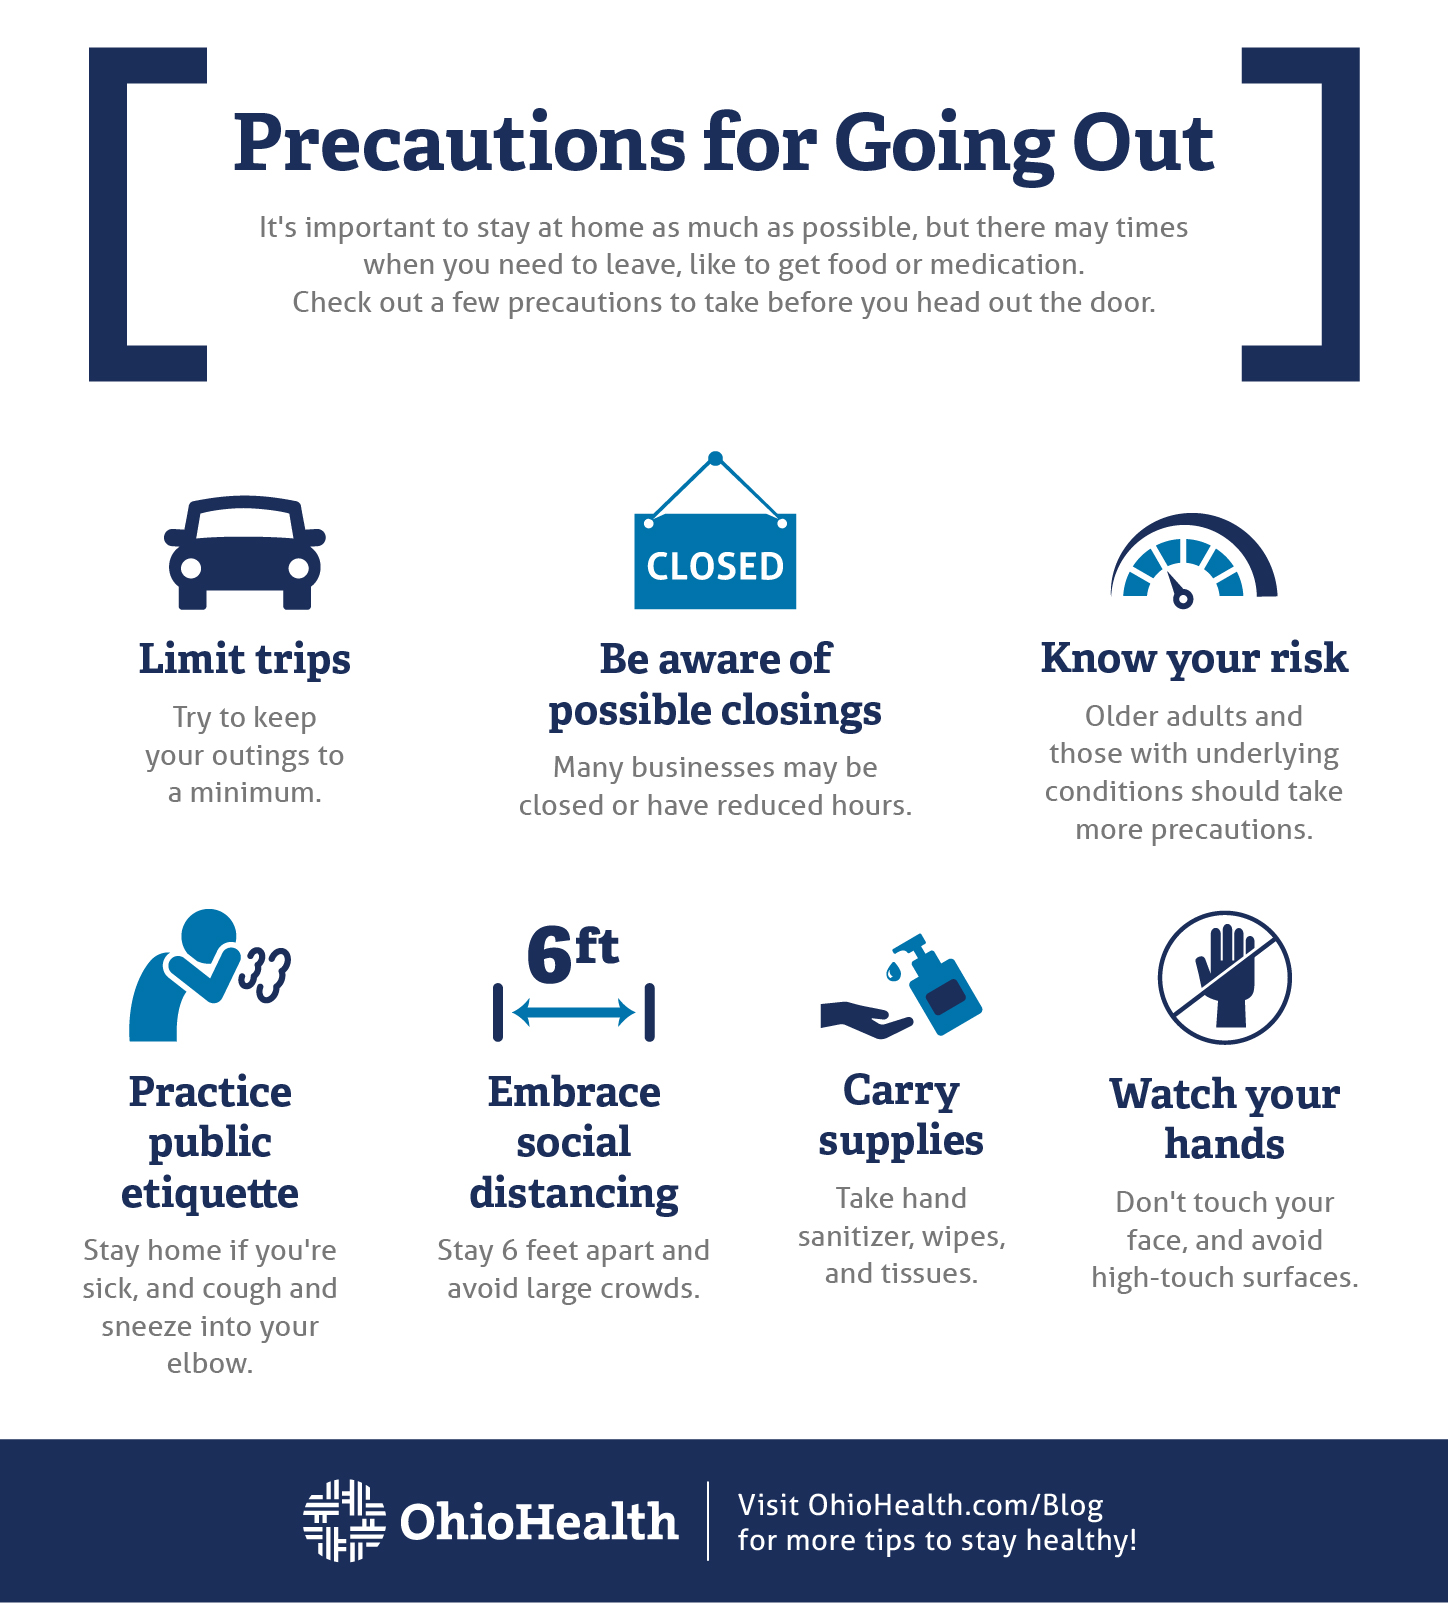 COVID-19 Precautions for Going Out Infographic_Updated 3.3